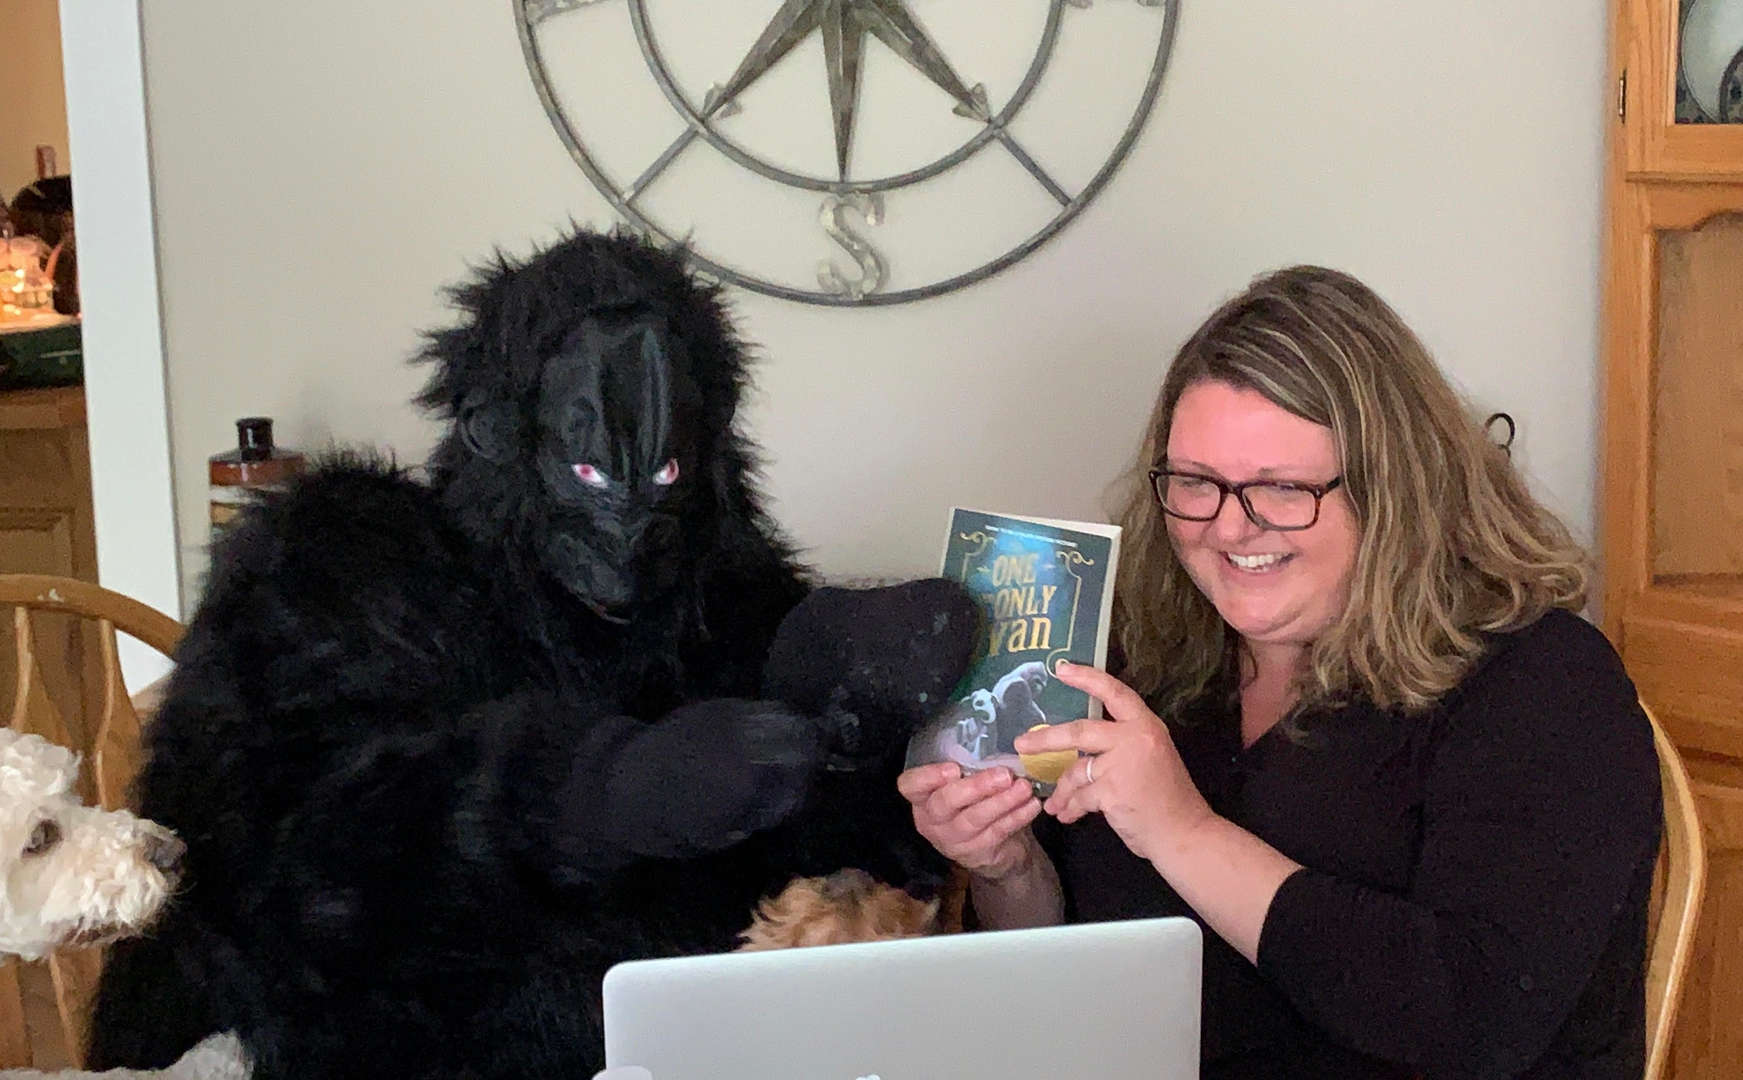 """Mrs. Woolard introduces the book. """"The One and Only Ivan,"""" a book about Ivan the Gorilla to her class with Ivan himself in attendance!"""